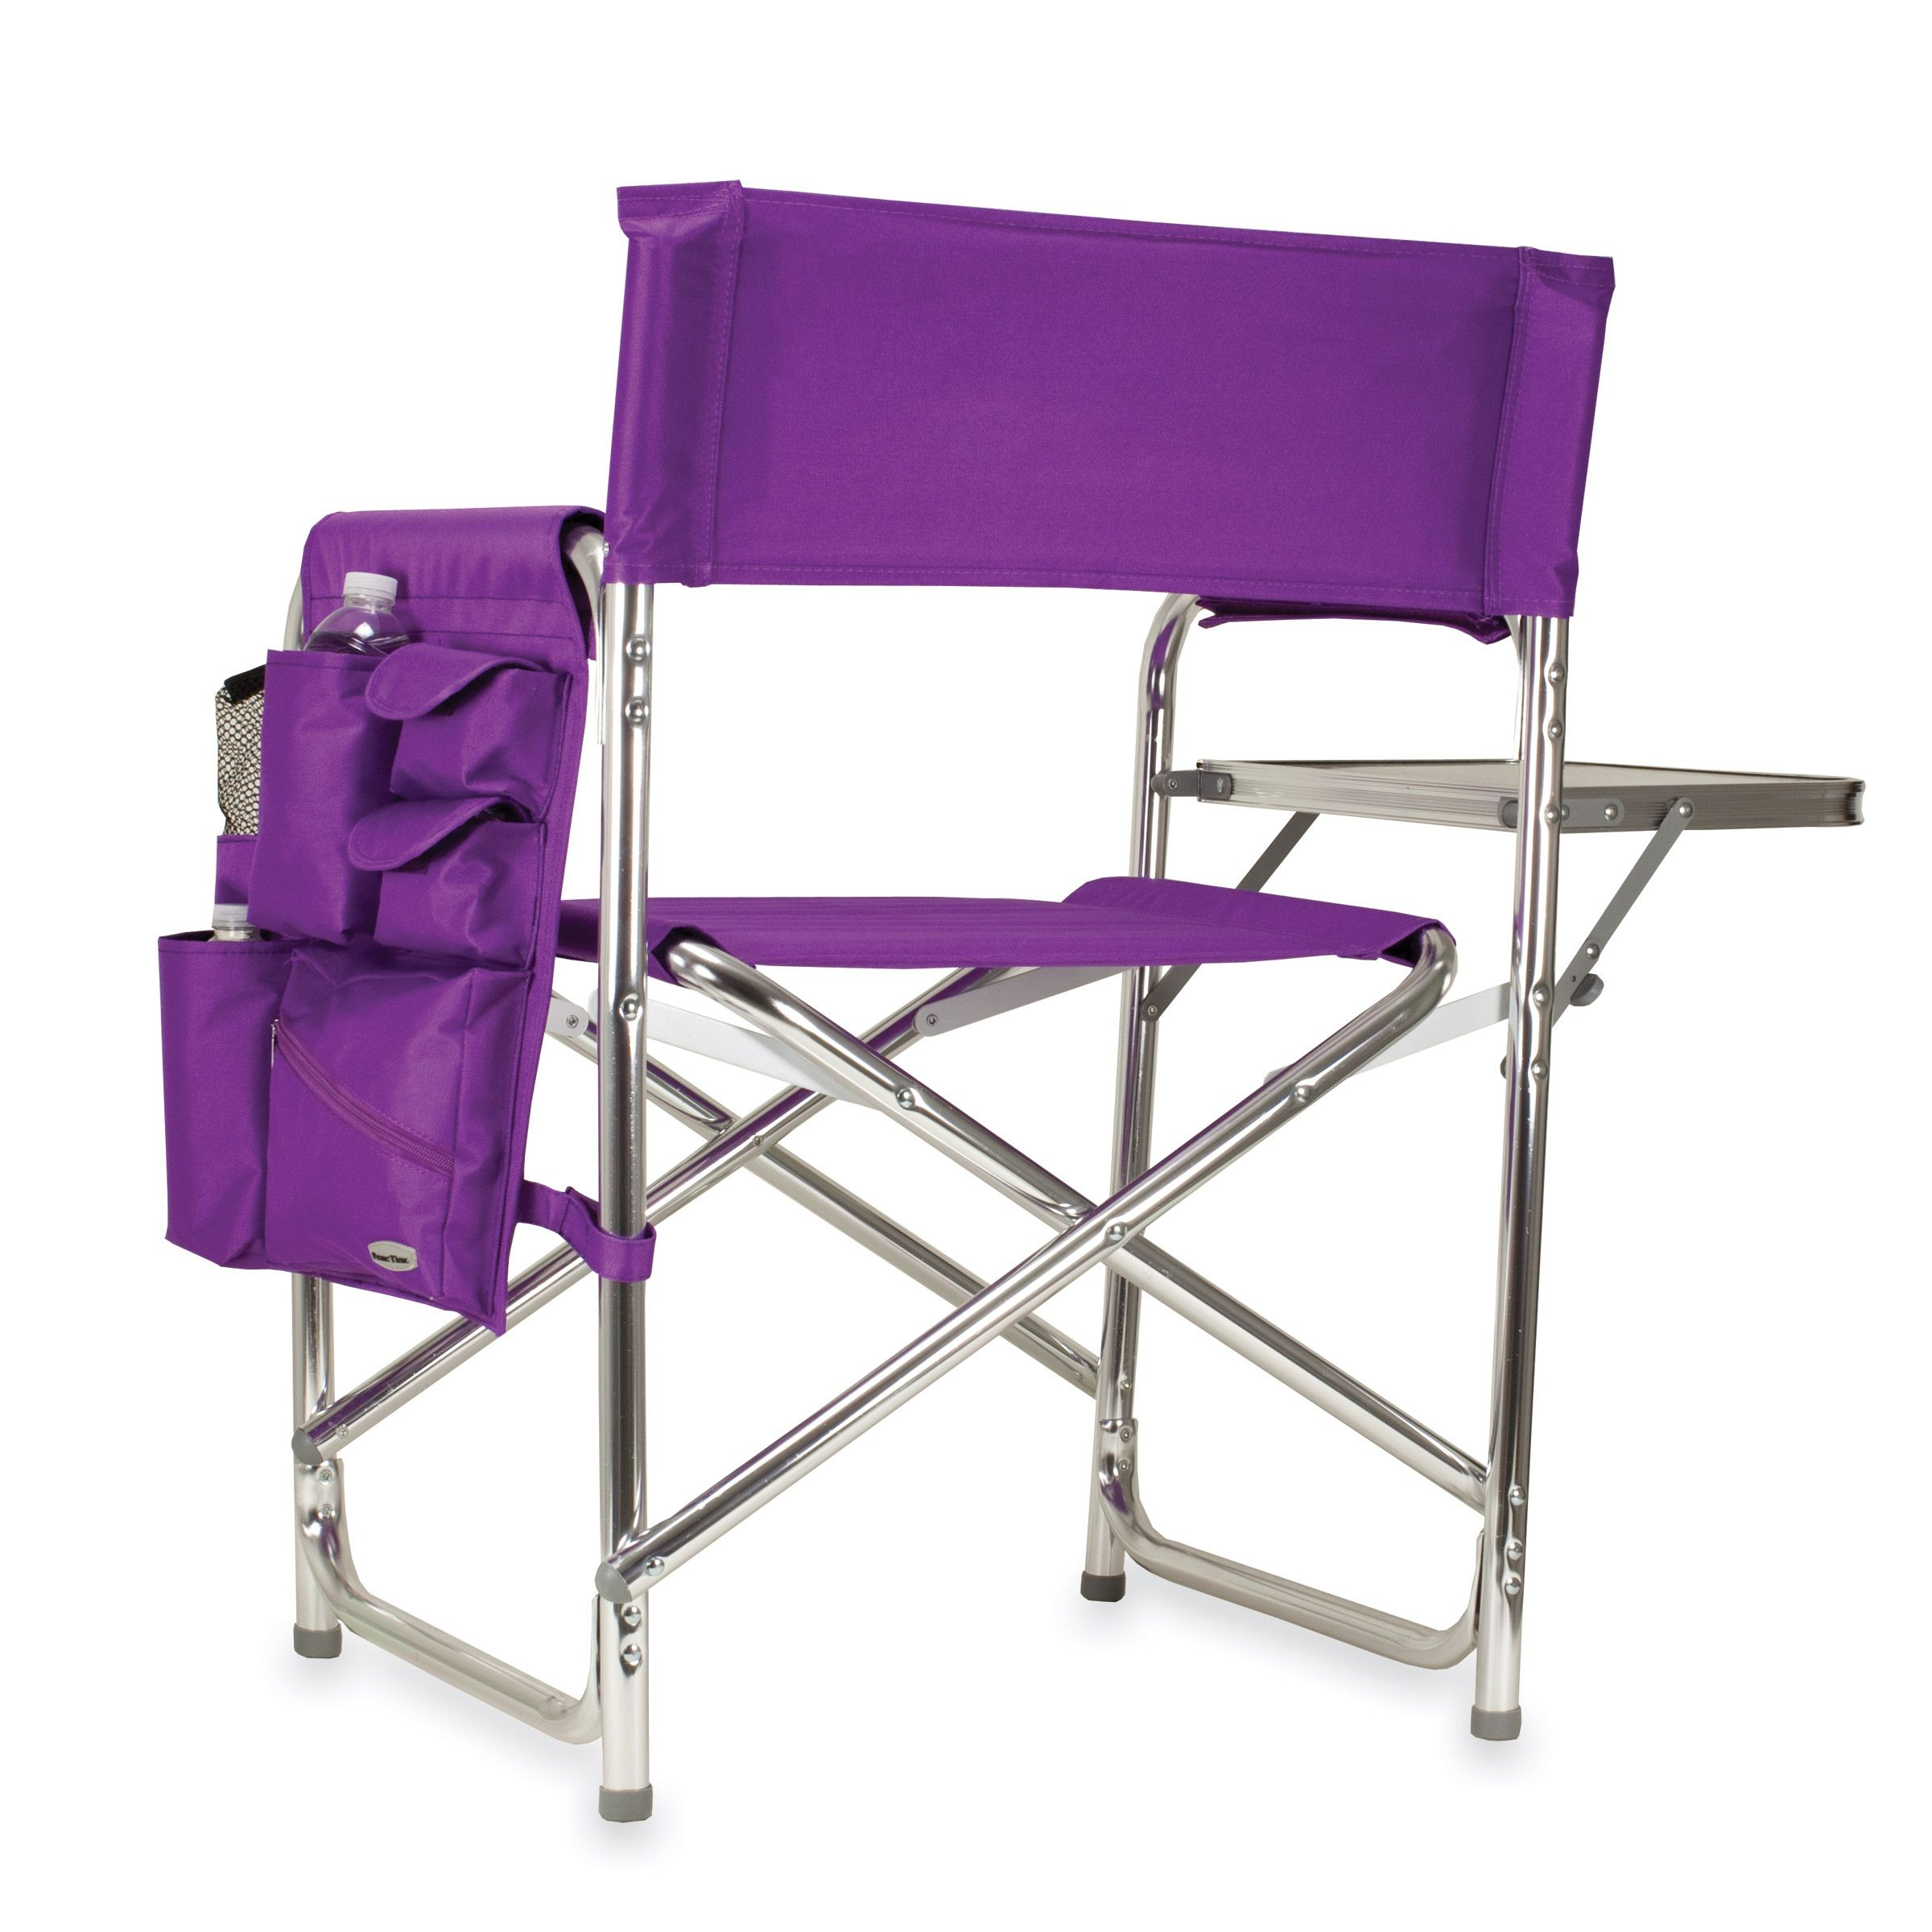 Captivating Picnic Time Purple Portable Folding Sports/Camping Chair